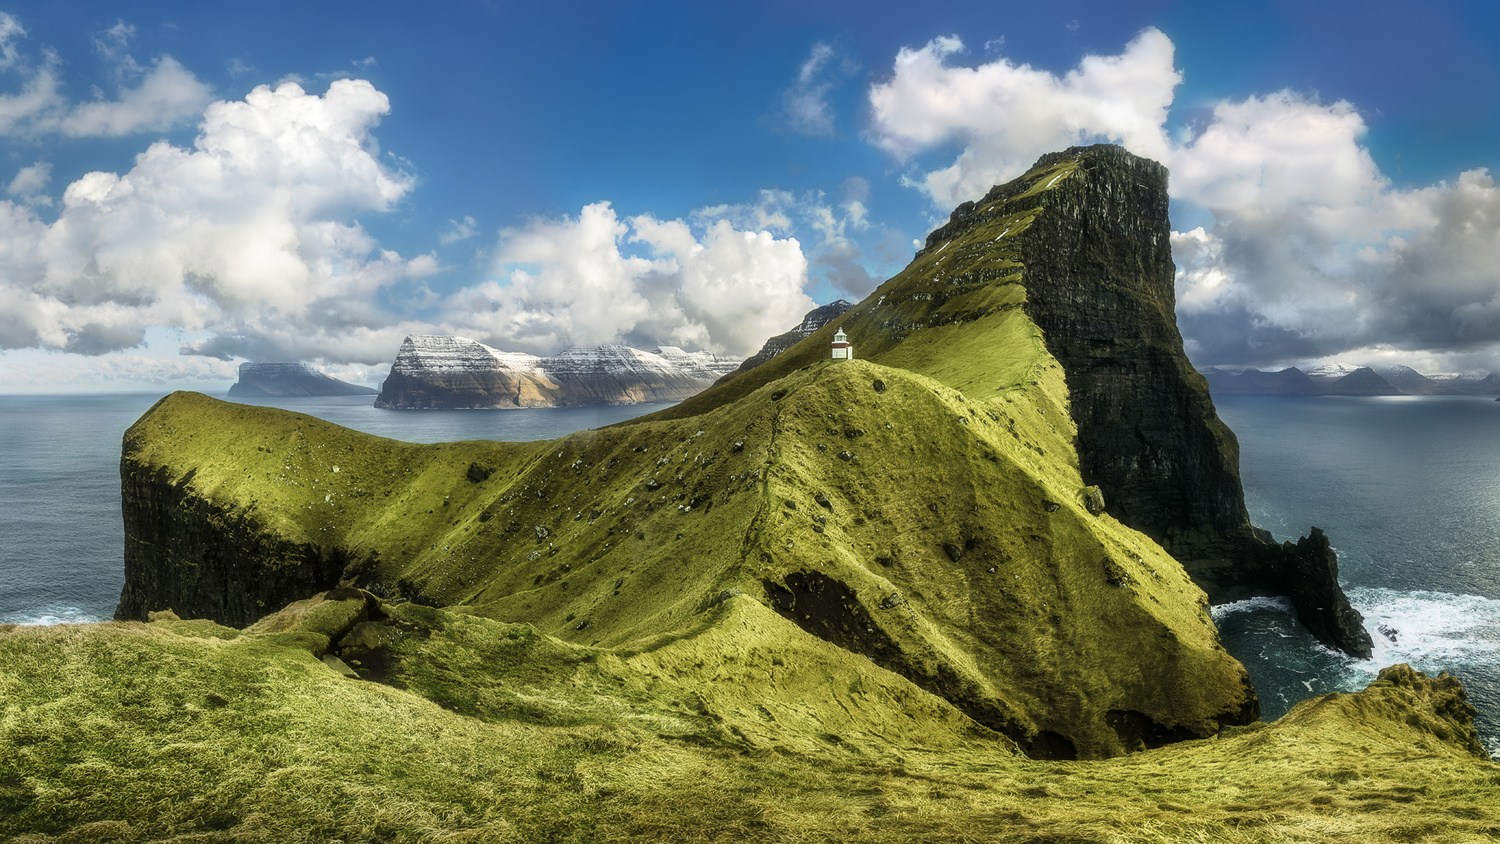 Kalsoy Panorama by Mads Peter Iversen